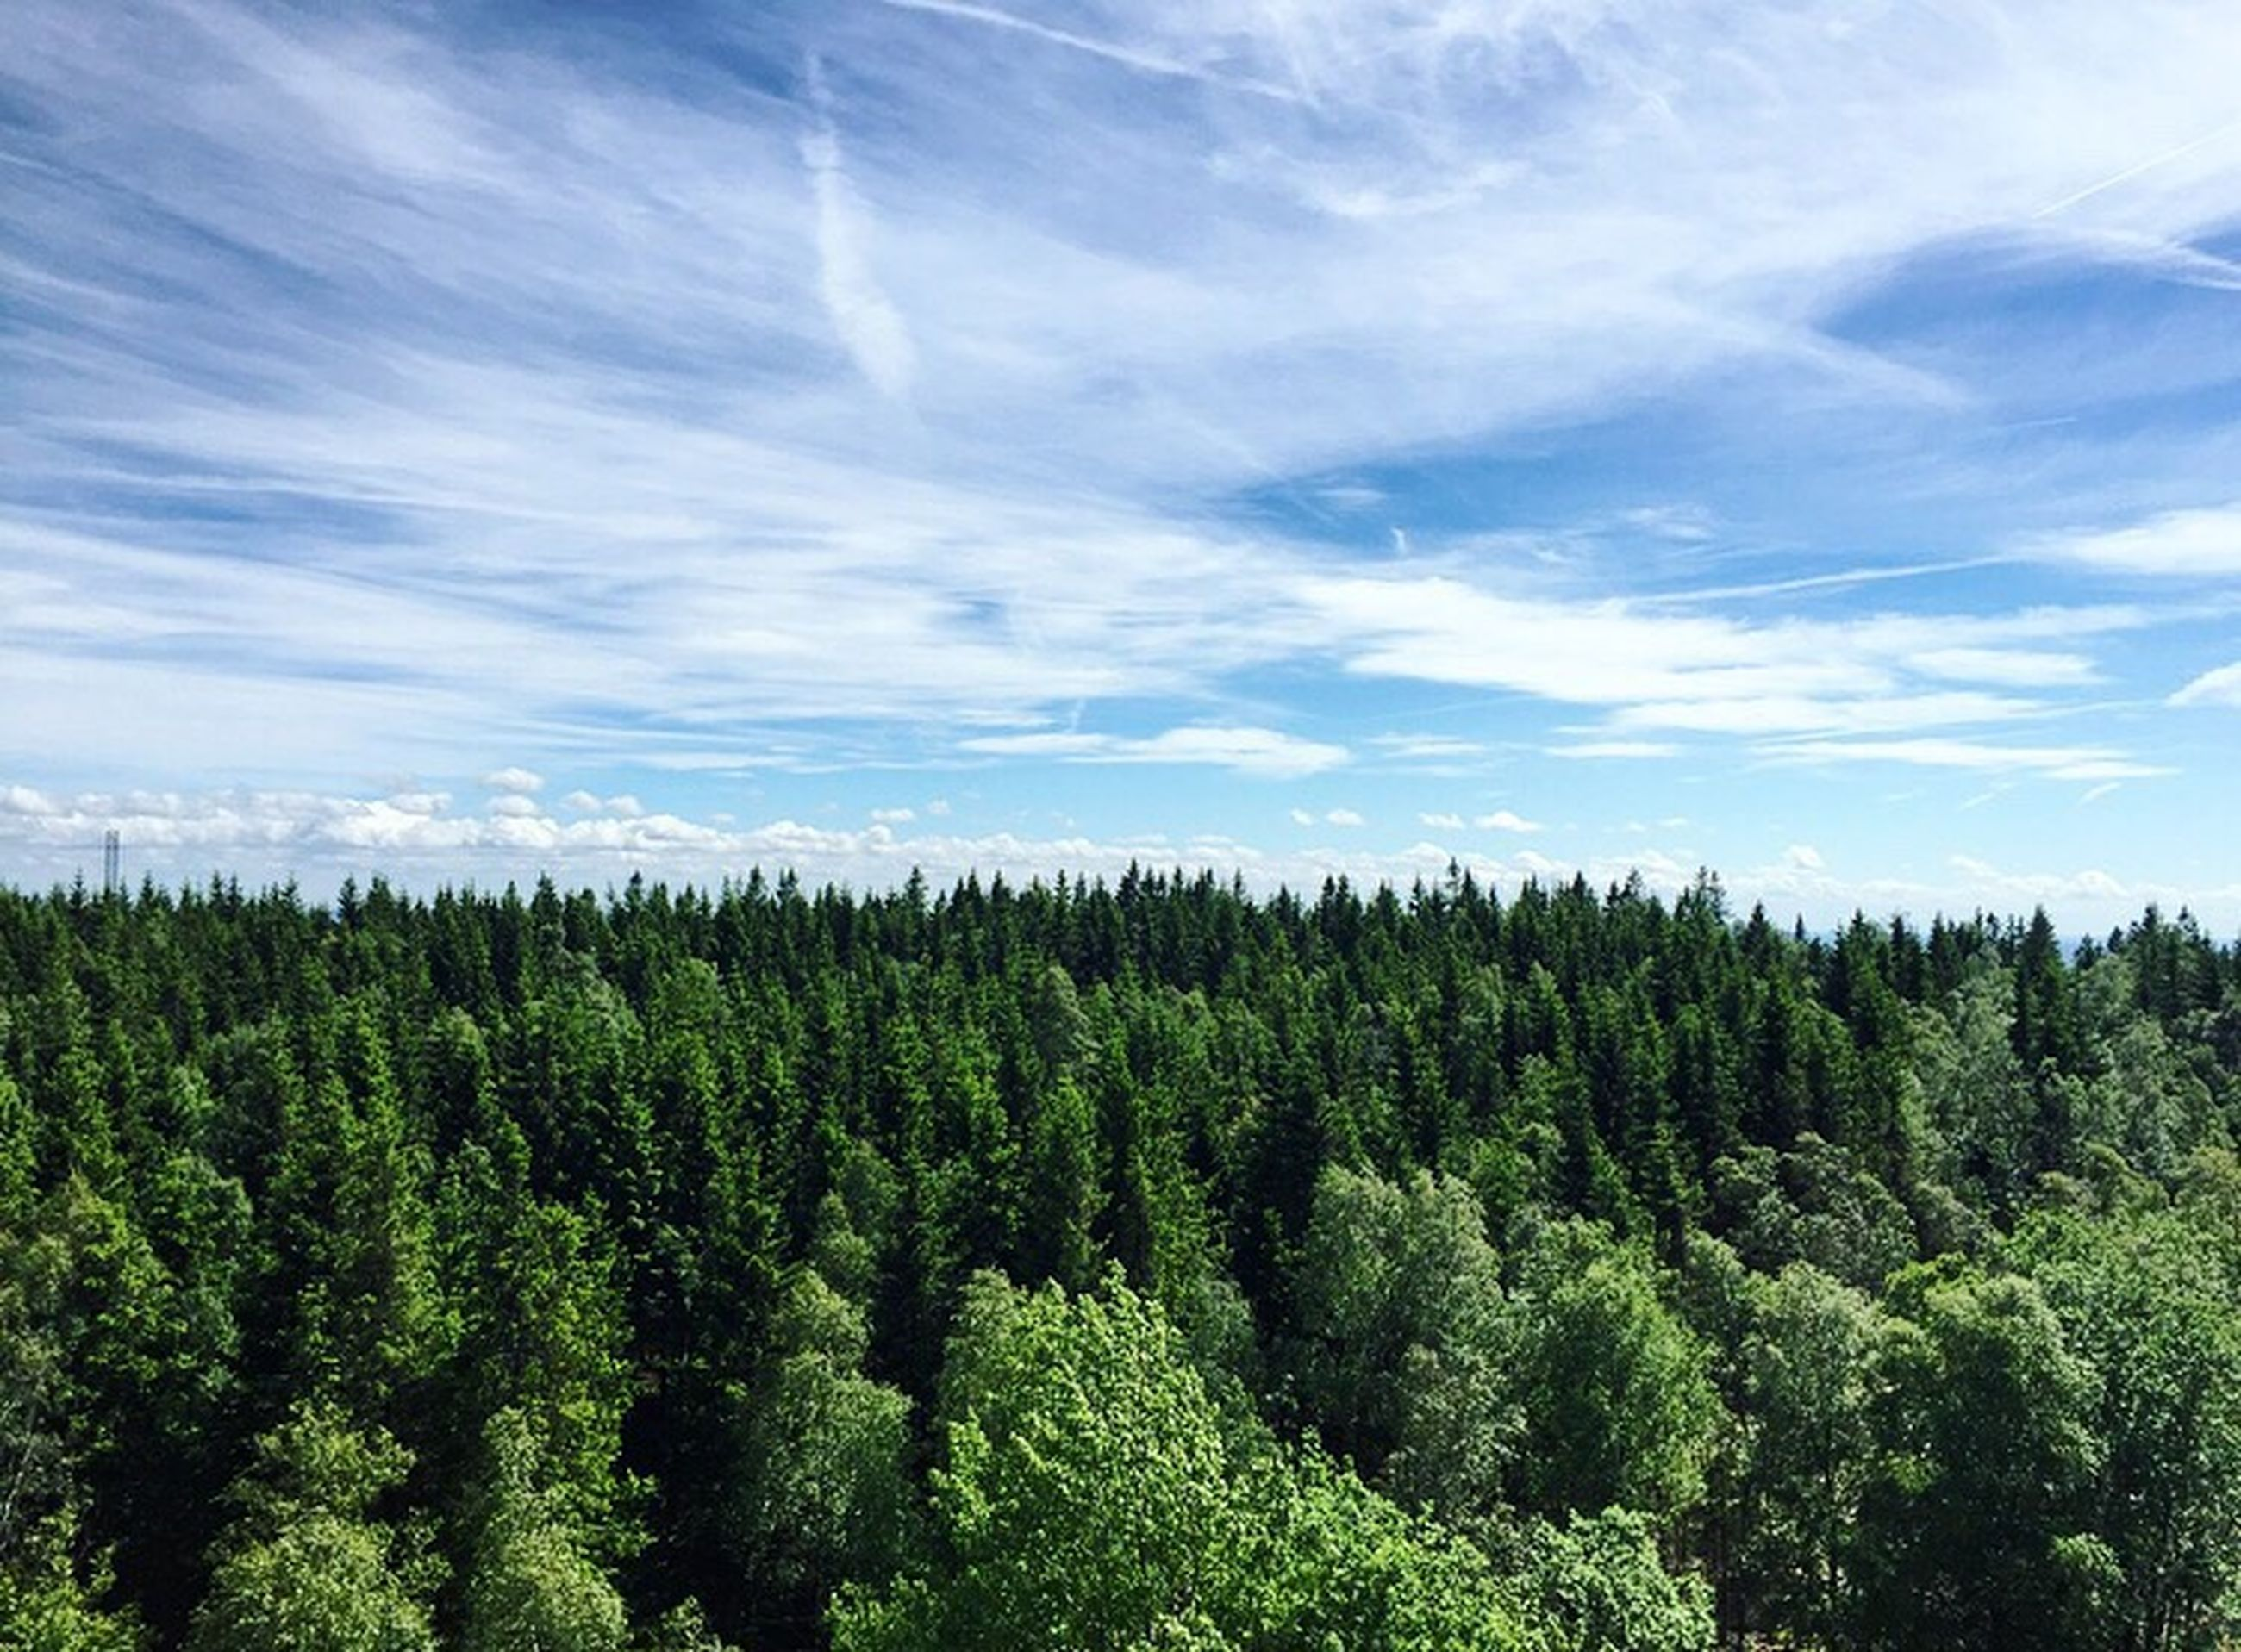 tree, forest, sky, nature, scenics, growth, beauty in nature, no people, pine tree, day, tranquility, green color, outdoors, landscape